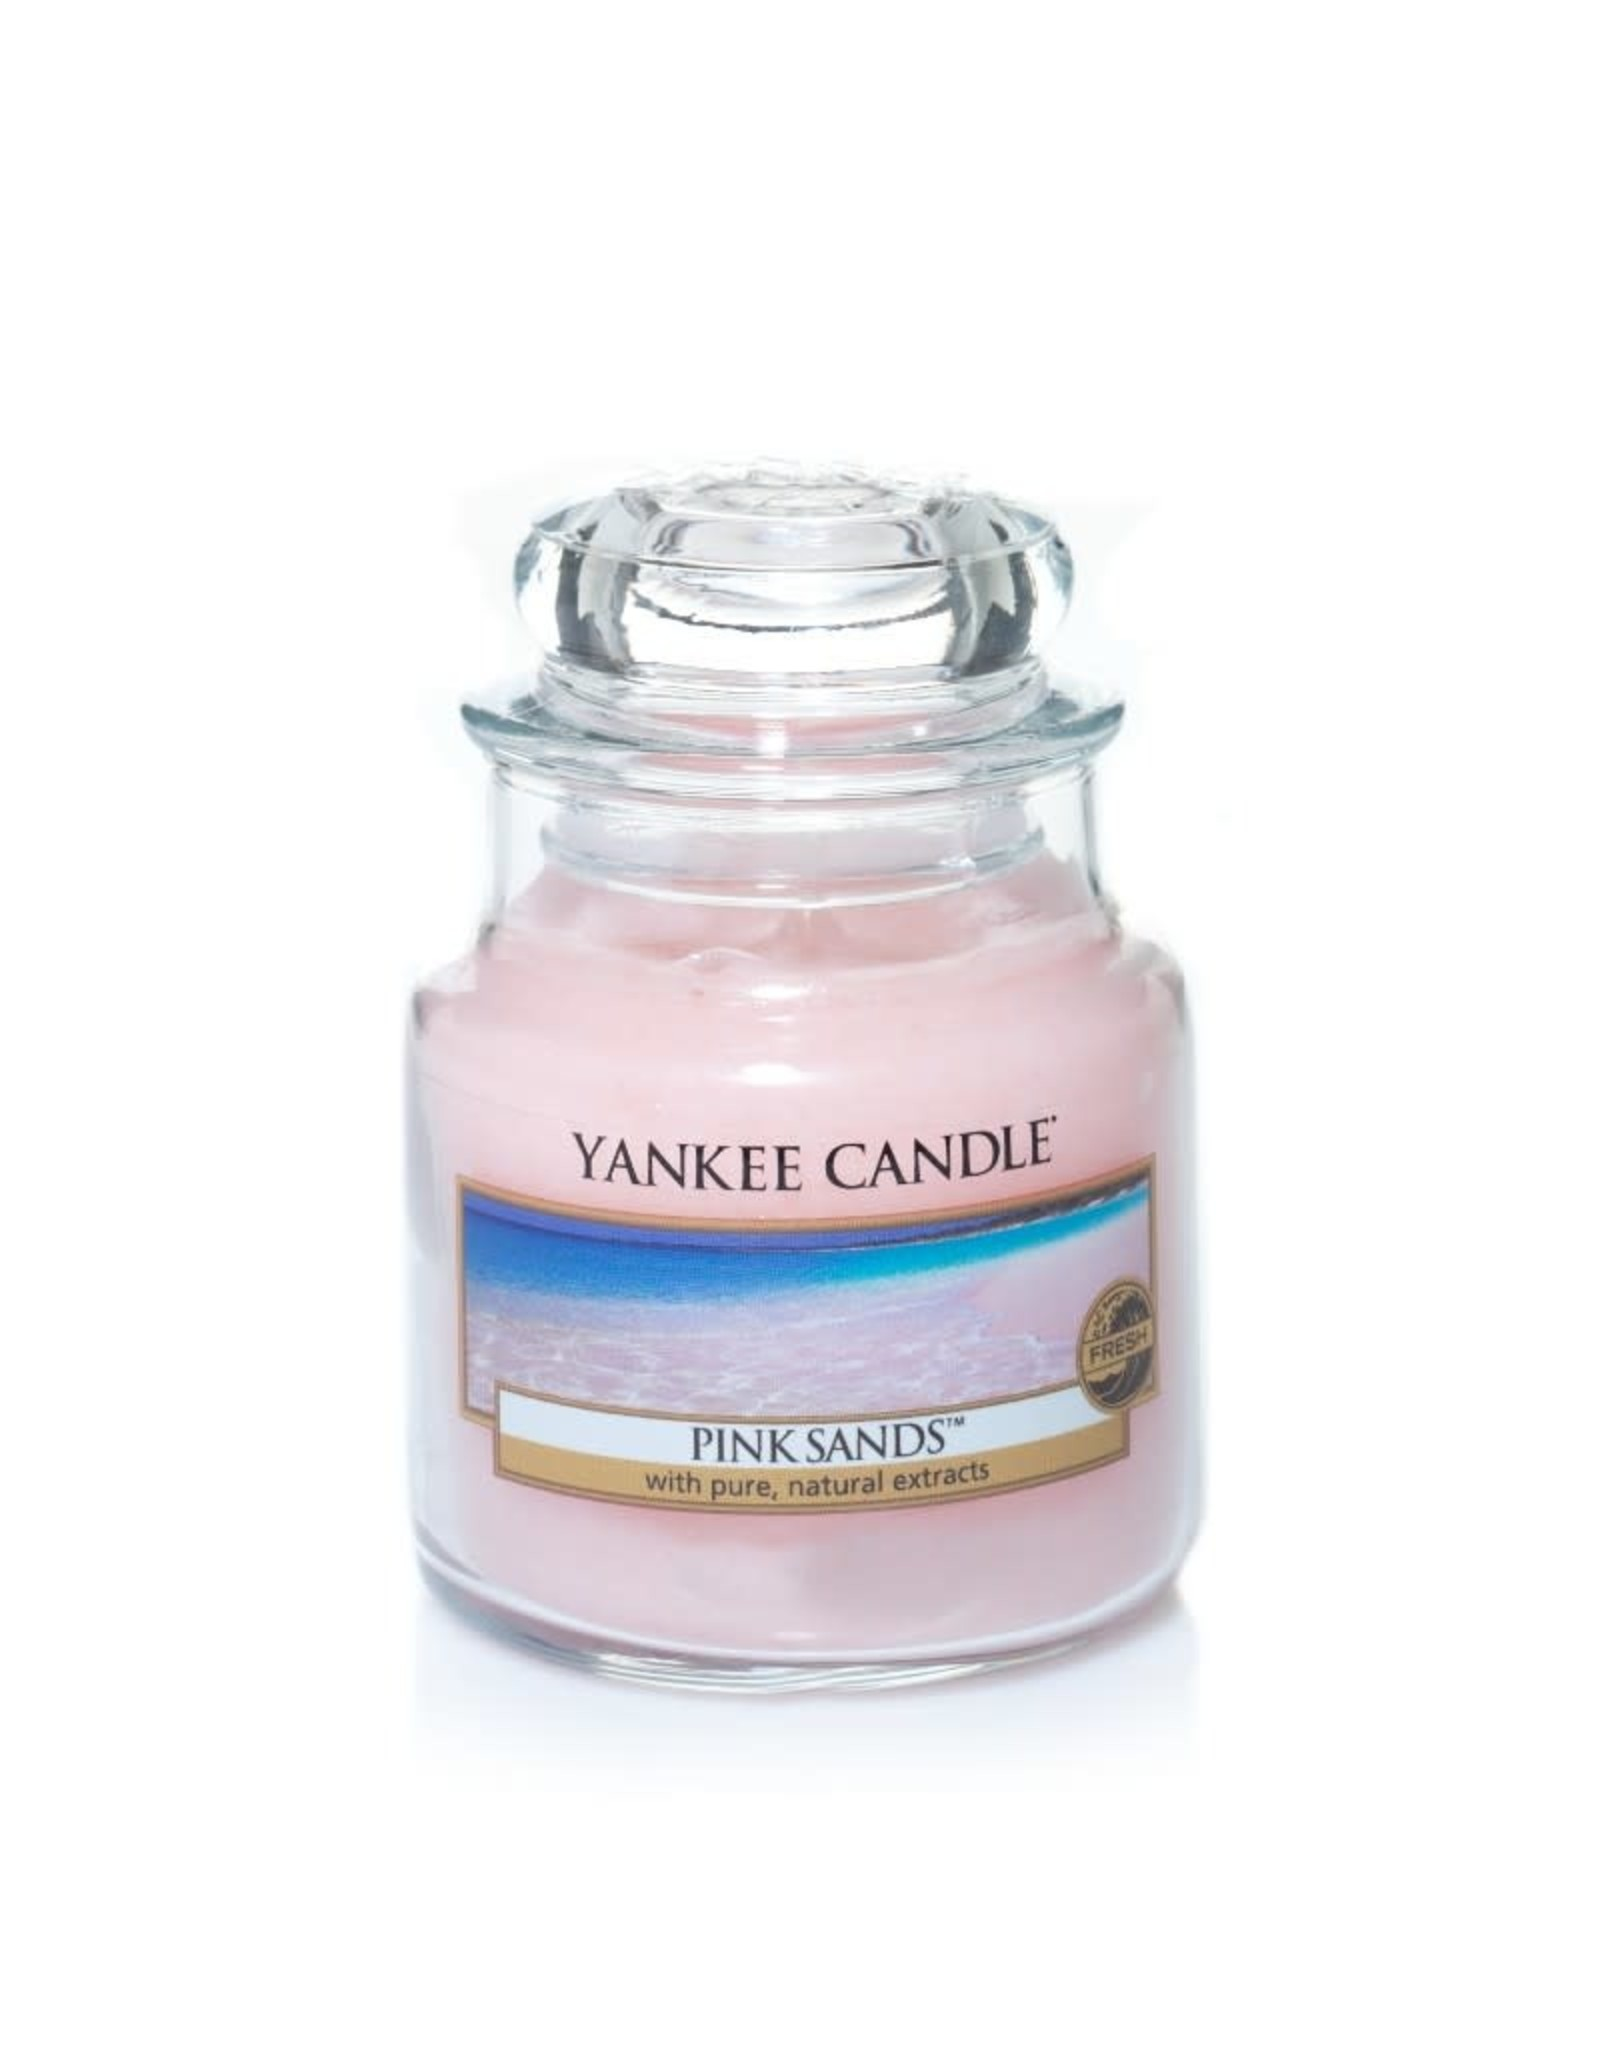 Yankee Candle Pink Sands Yankee Candle Small